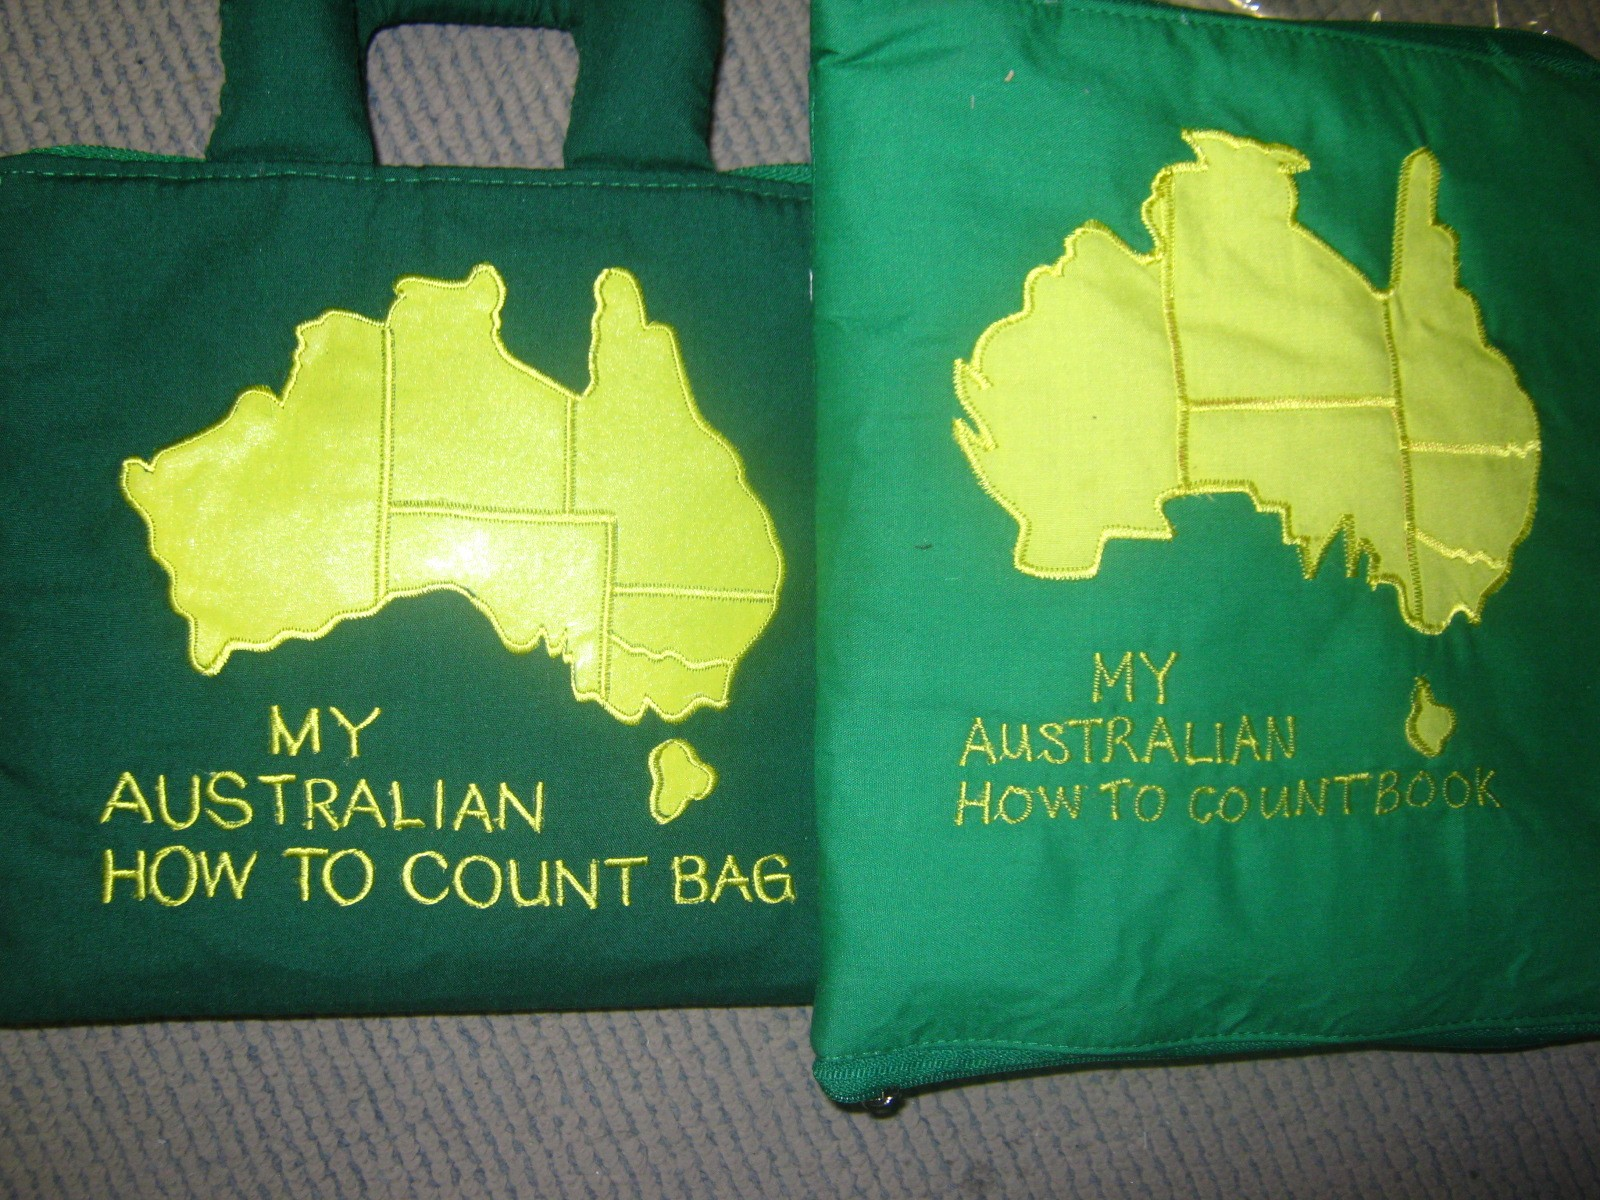 My Australian How to Count Bag